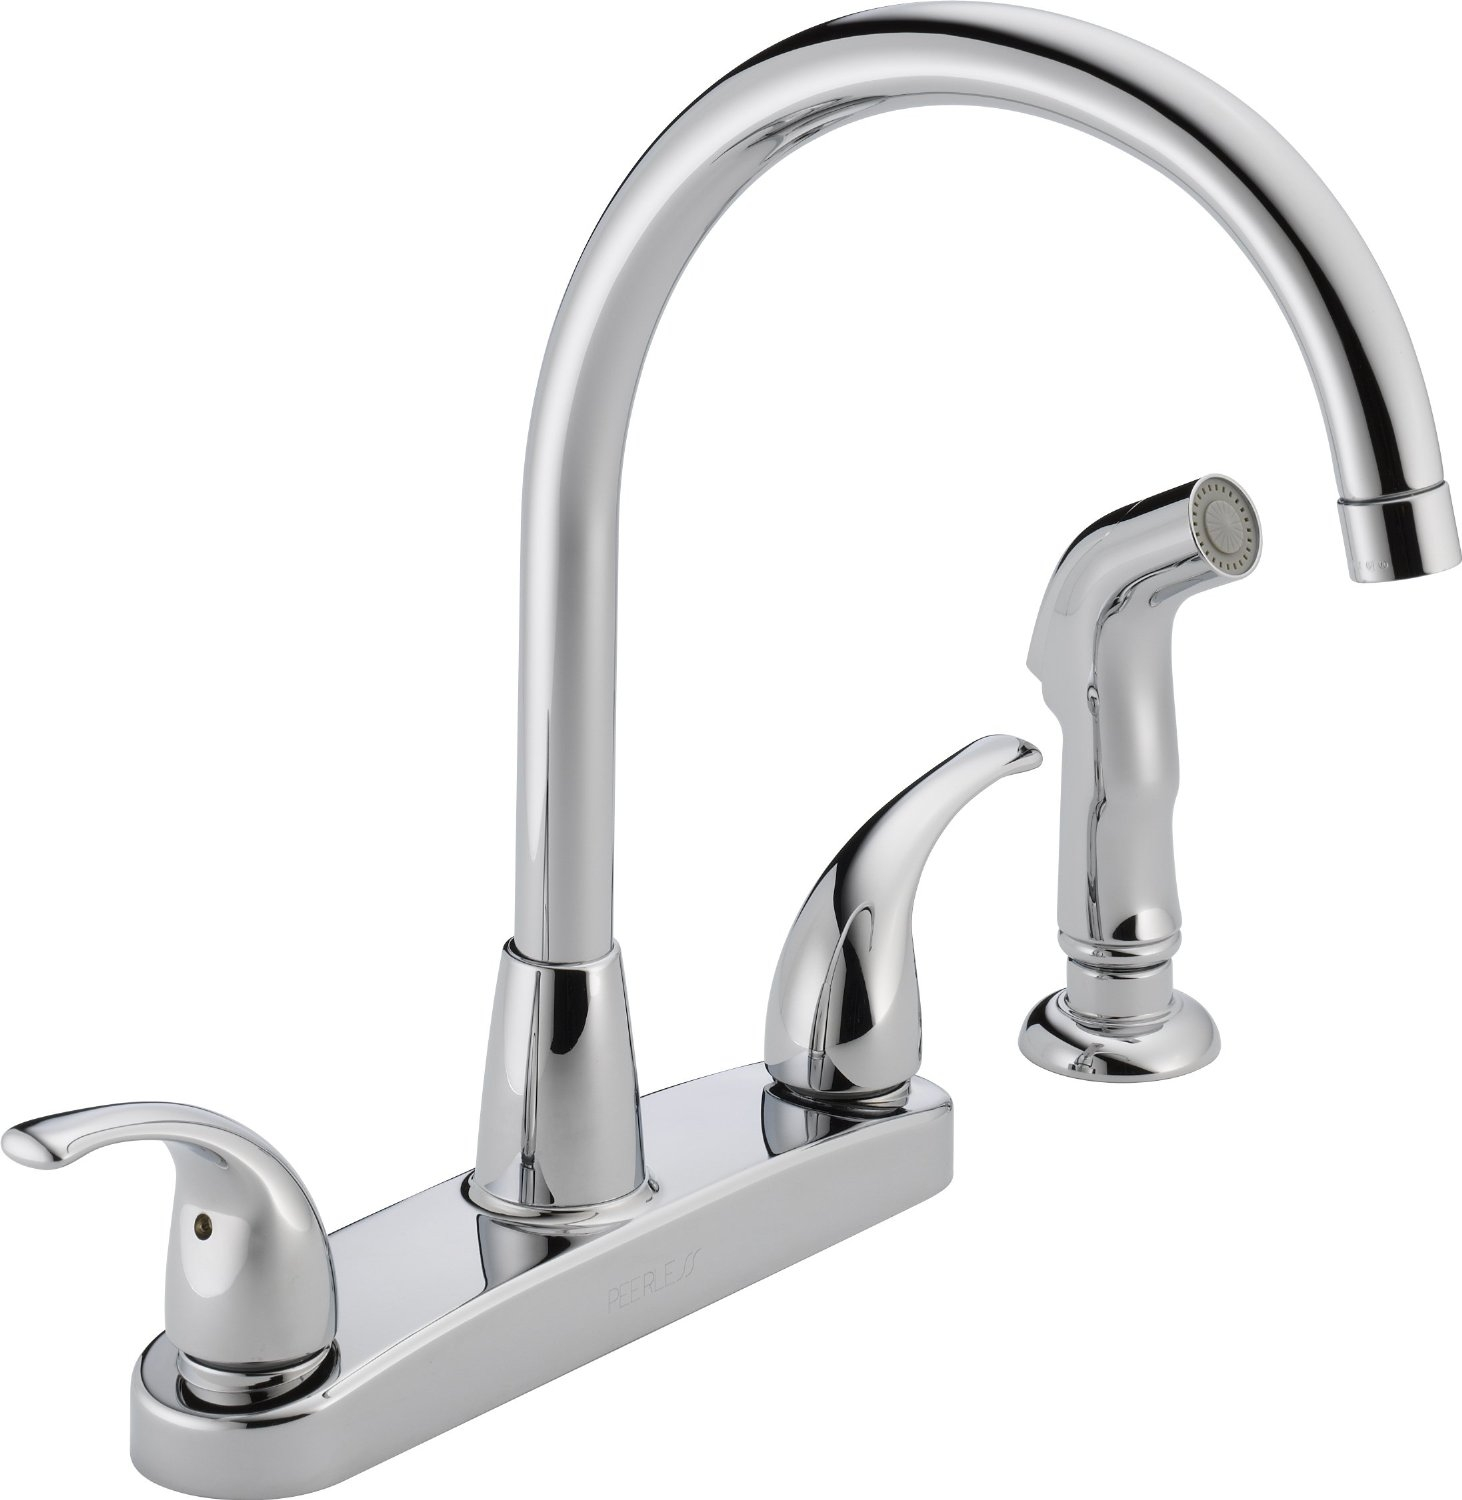 Ideas, peerless shaw pull out kitchen faucet peerless shaw pull out kitchen faucet kitchen faucet unreal kitchen sinks and faucets sinks kitchen 1462 x 1500  .